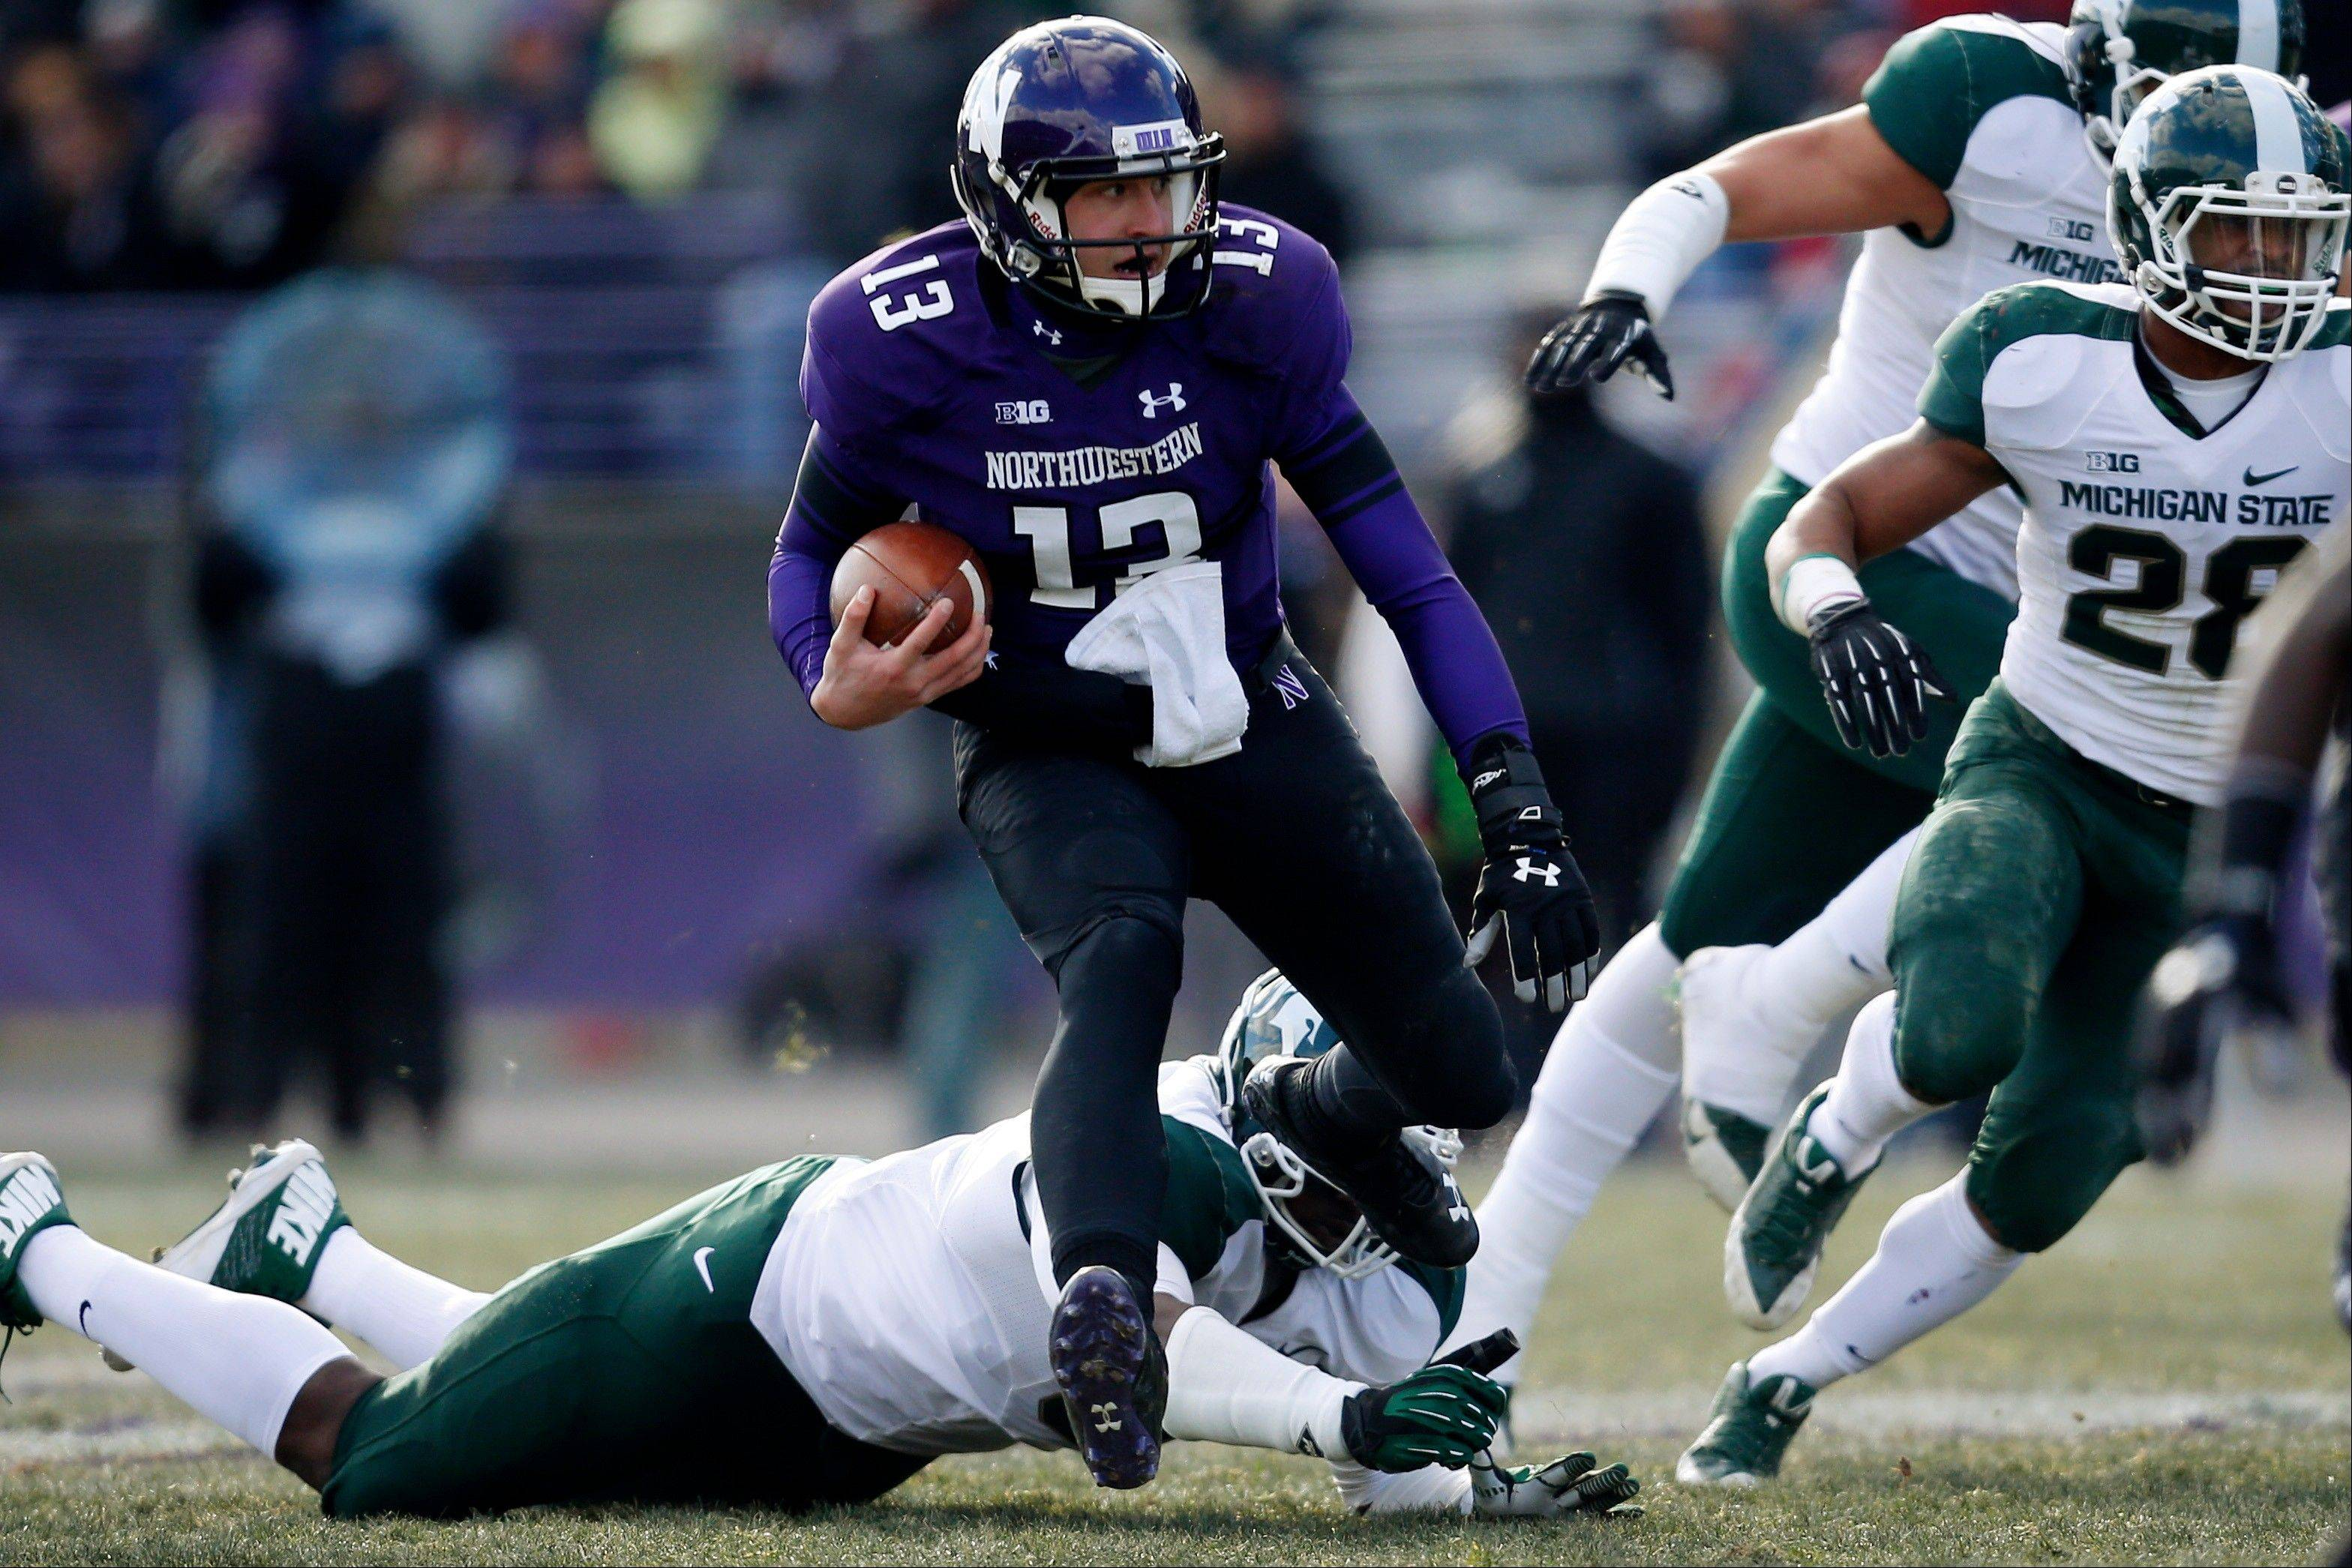 Northwestern quarterback Trevor Siemian (13) leaps over Michigan State defensive end Joel Heath (92) during the second half of an NCAA football game on Saturday, Nov. 23, 2013, in Evanston, Ill.